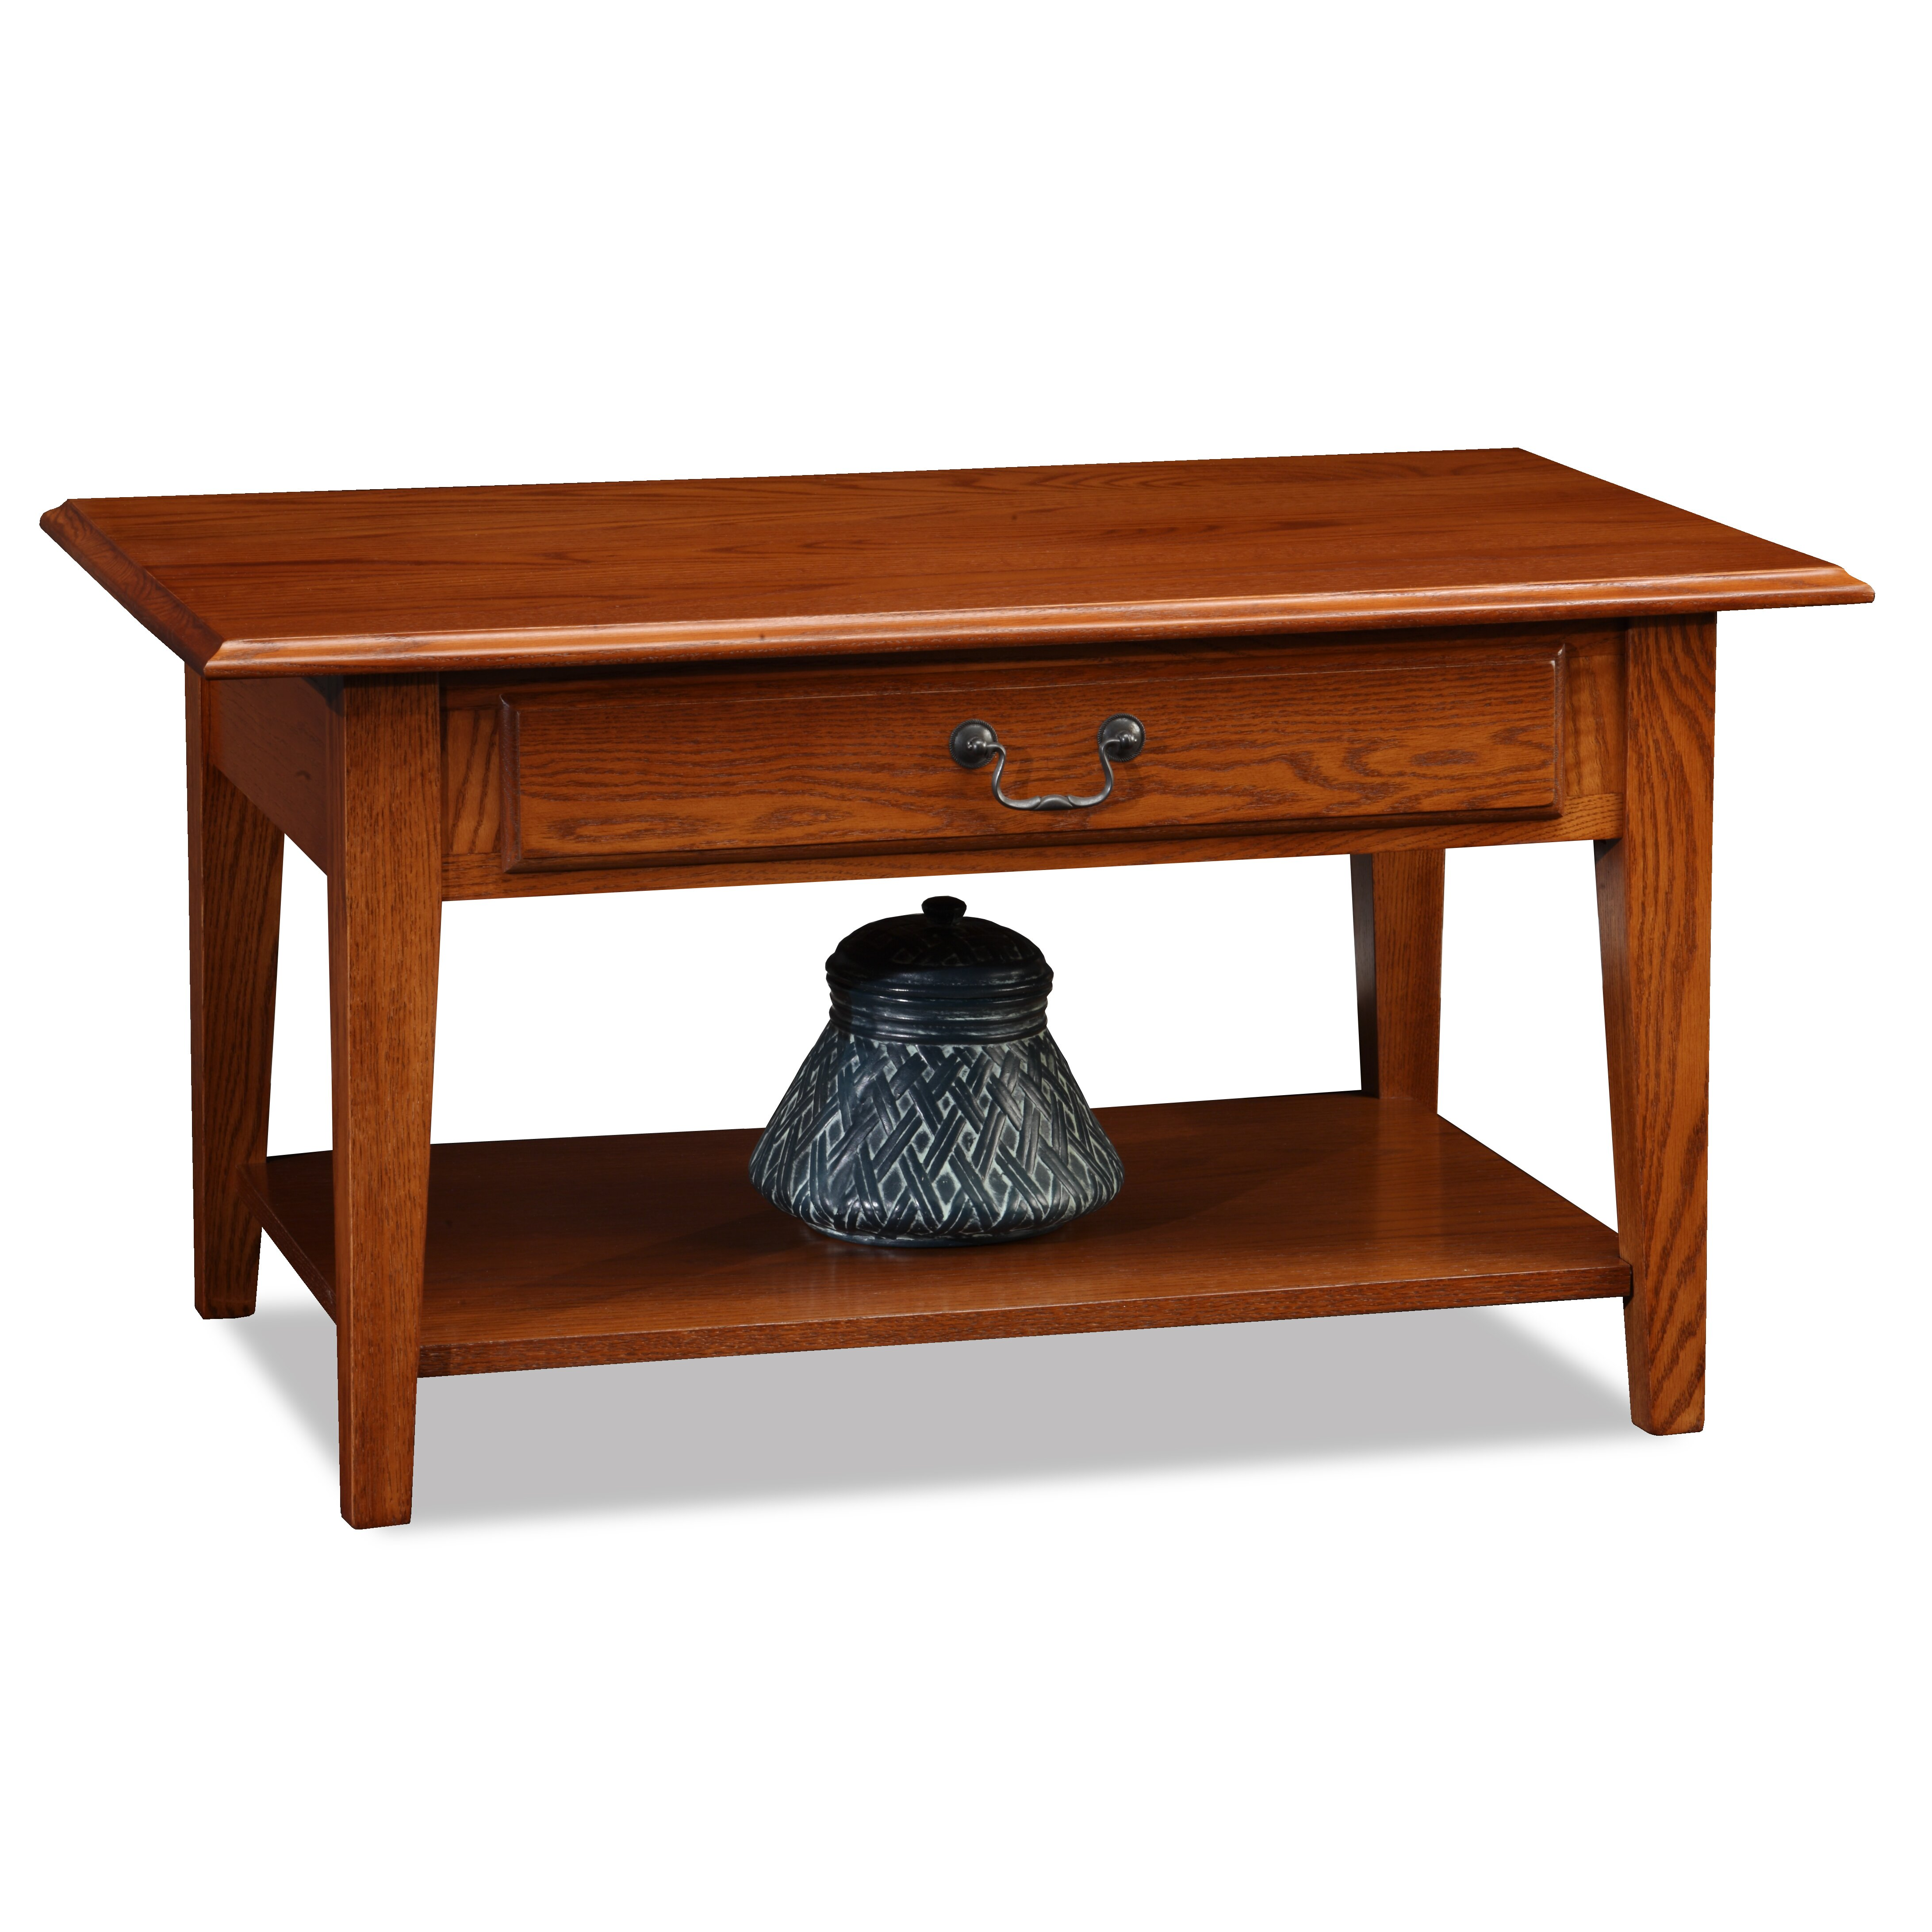 Leick shaker coffee table reviews wayfair for Furniture courier